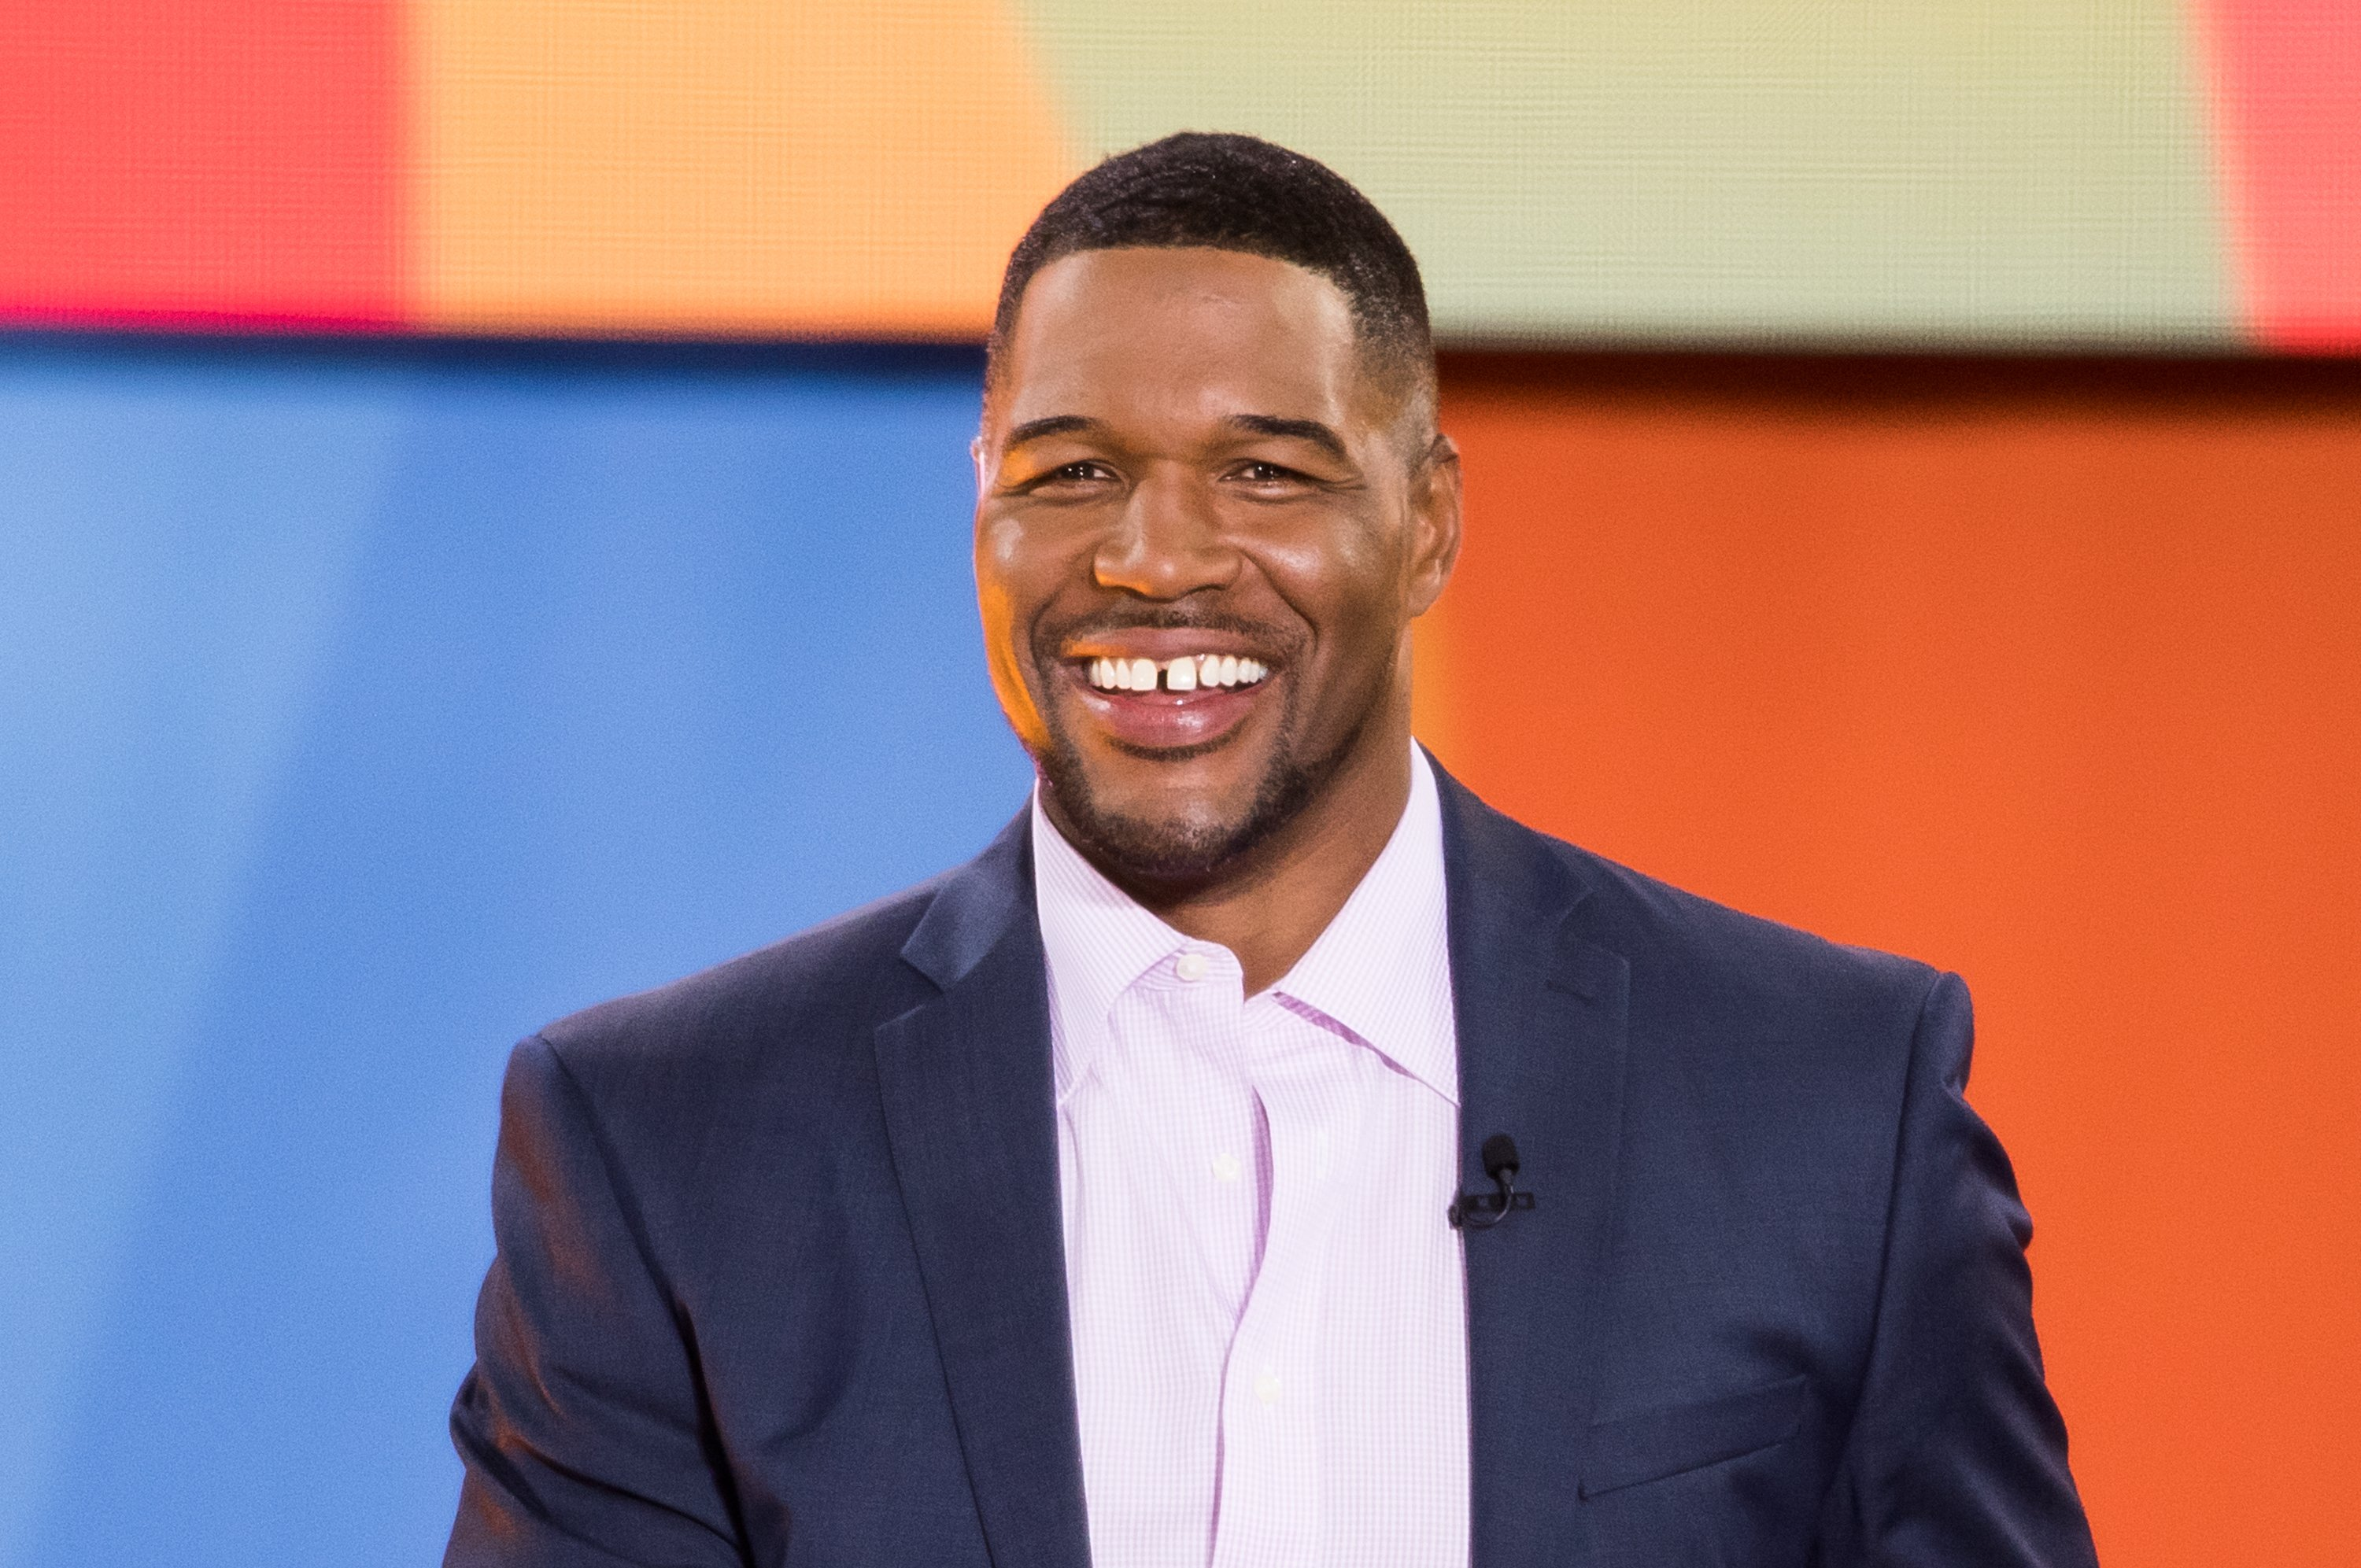 """Michael Strahan at ABC's """"Good Morning America"""" at Rumsey Playfield, Central Park on July 6, 2018 in New York City.